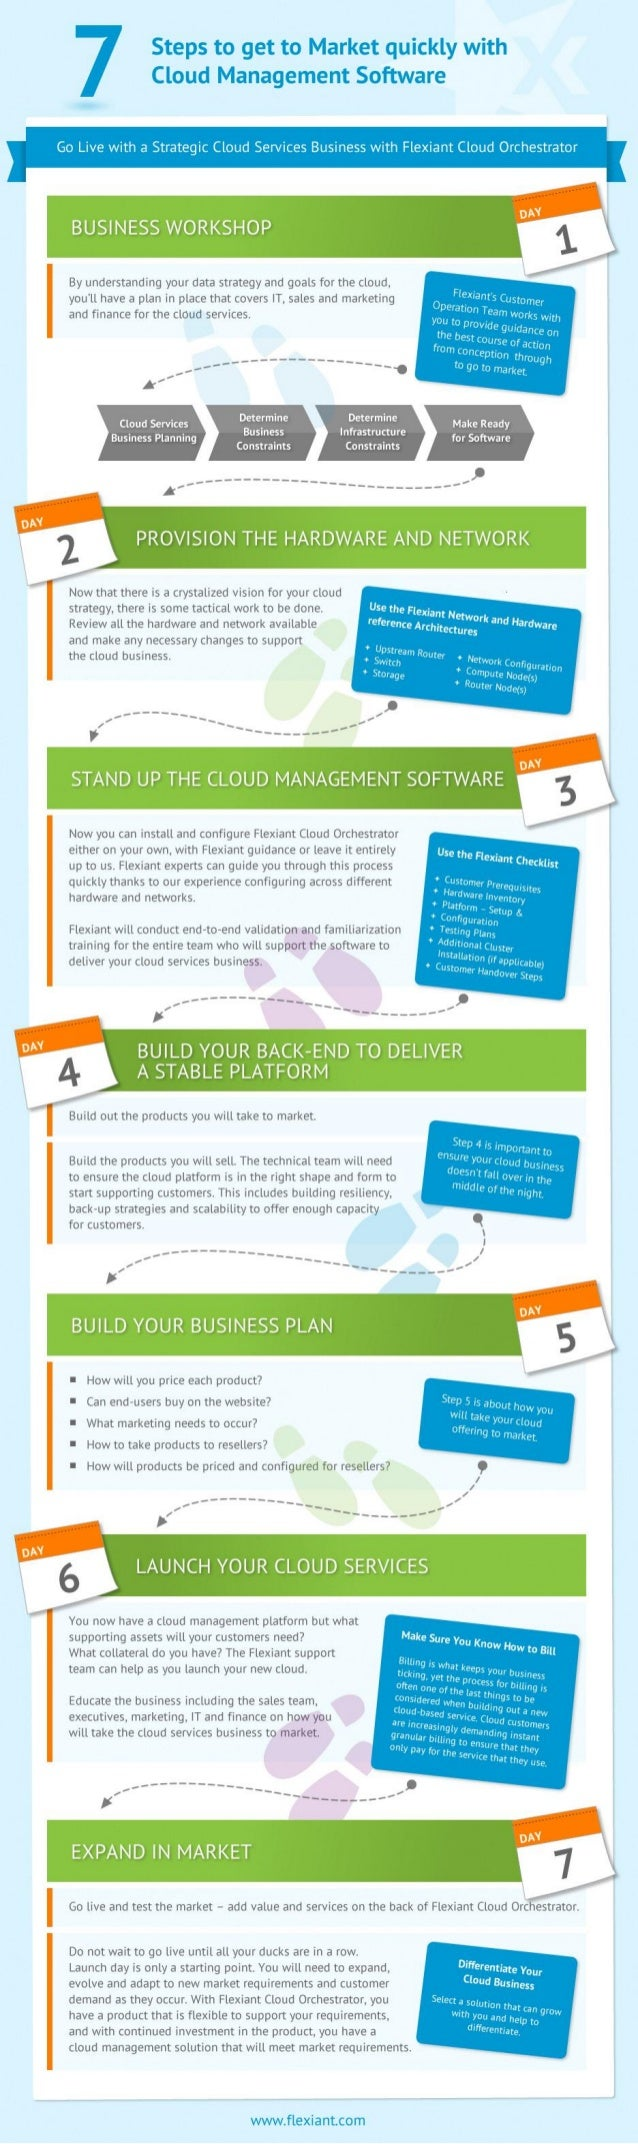 7 step guide to get to market quickly with Flexiant Cloud Orchestrator